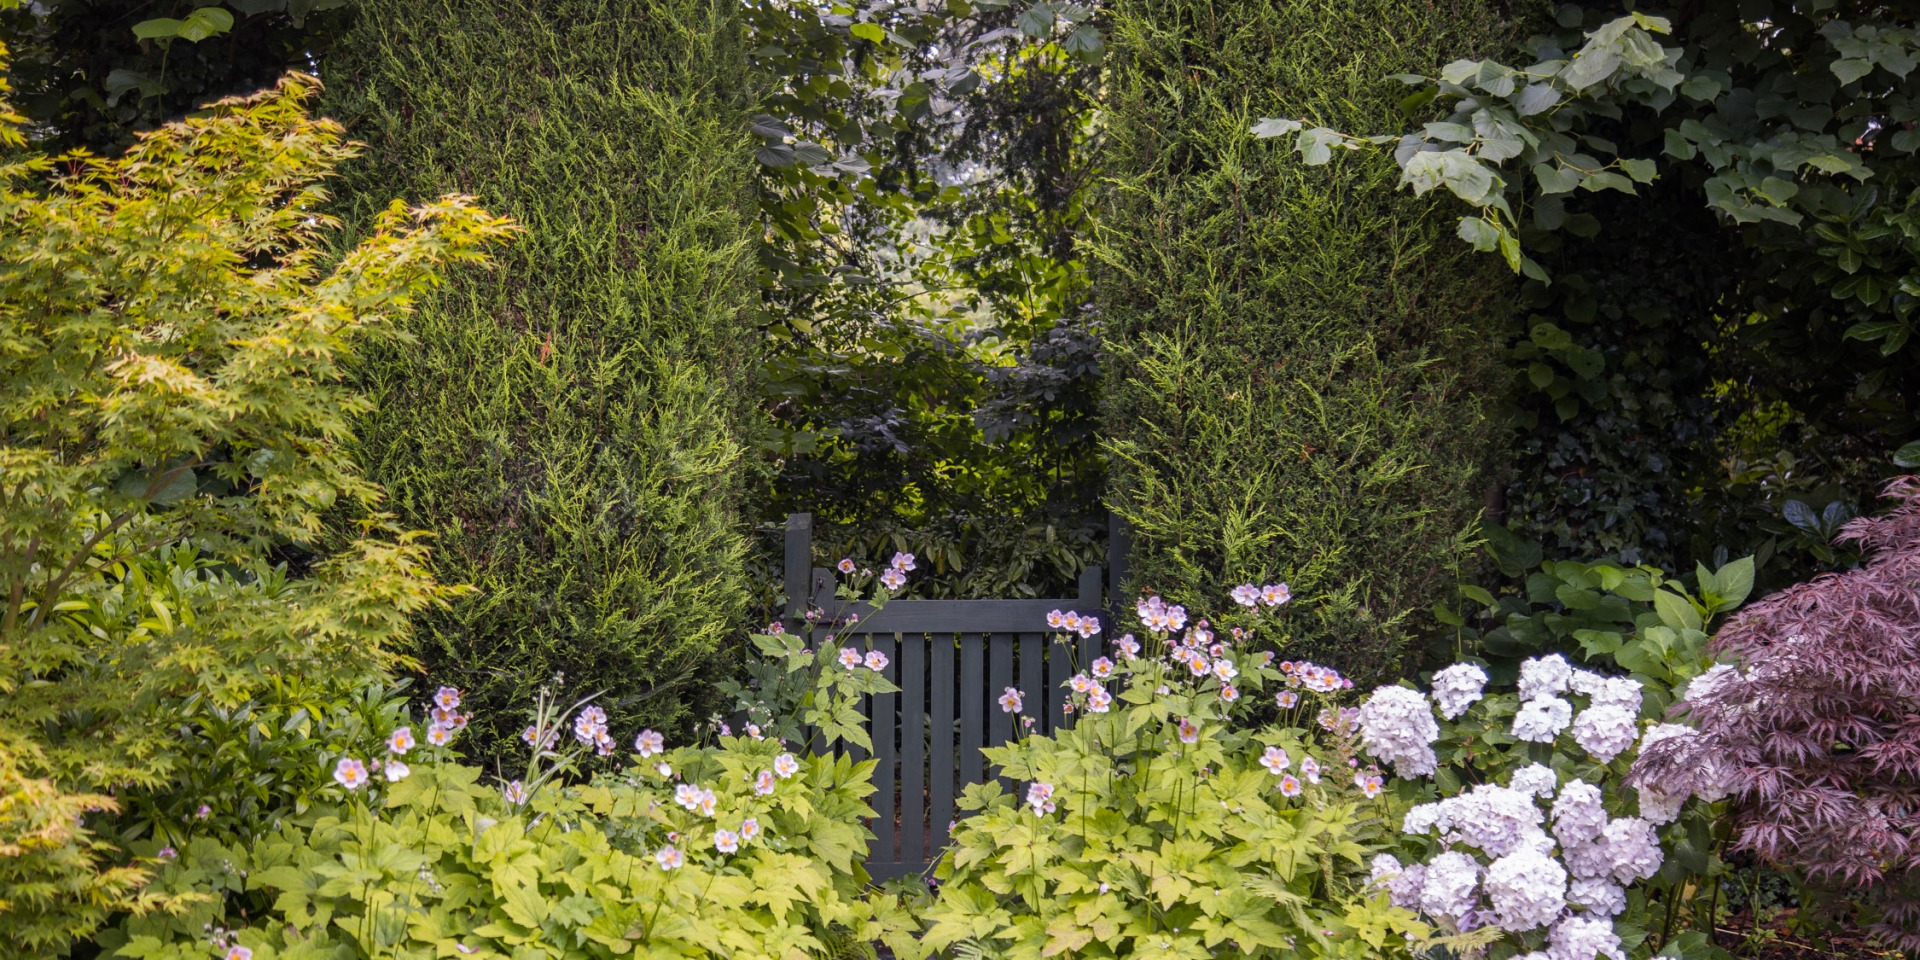 Gate between hedge, surrounded by flowers